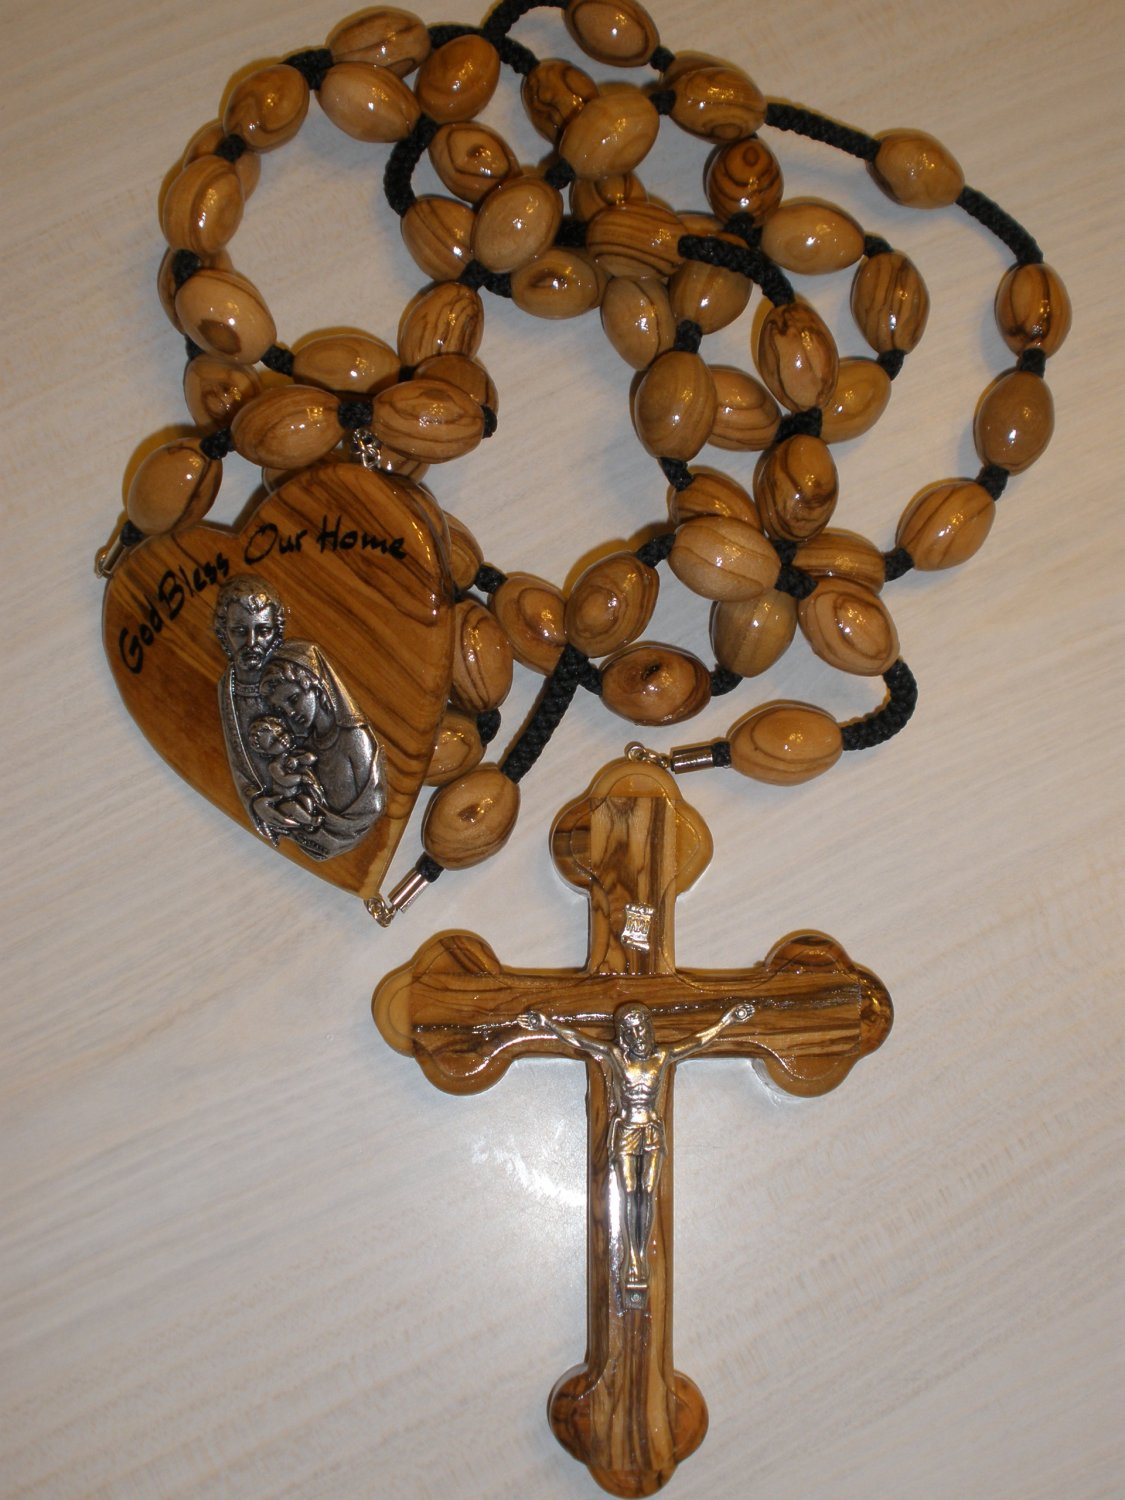 'God Bless Our Home' - Olive Wood Wall Rosary